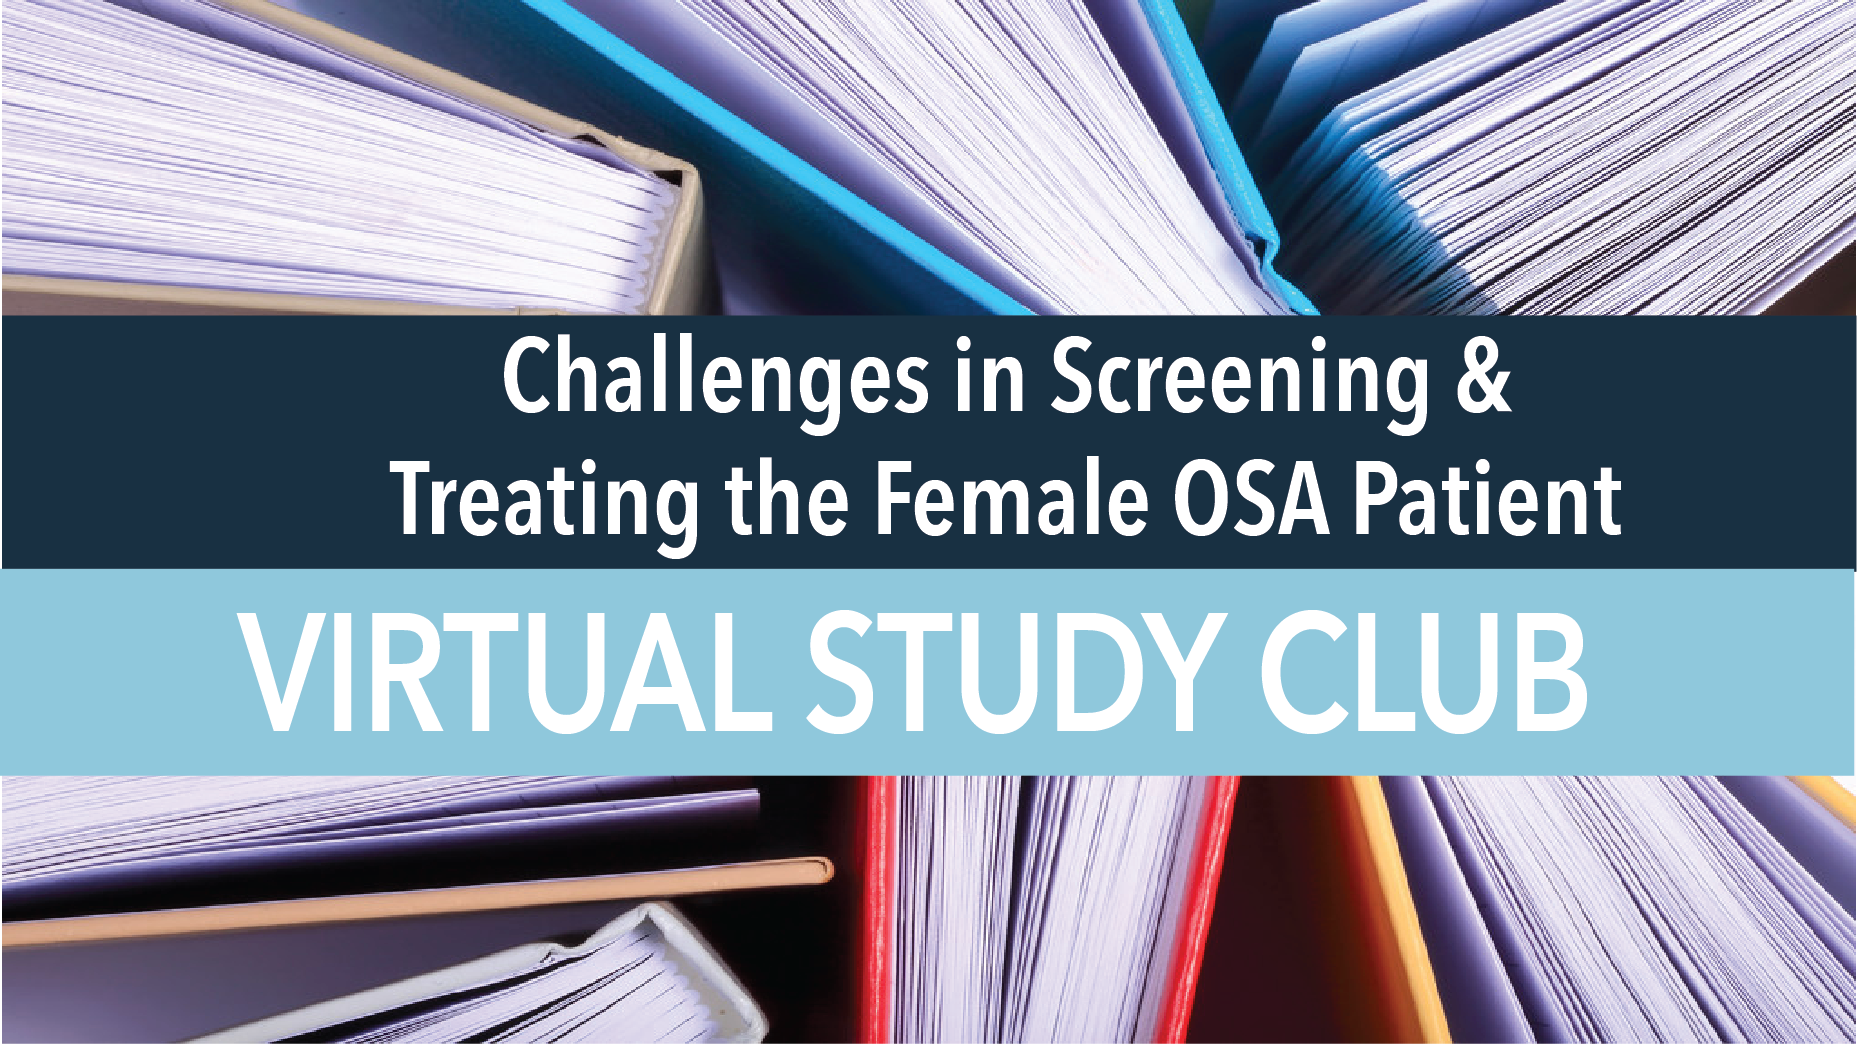 Challenges in Screening & Treating the Female OSA Patient.png